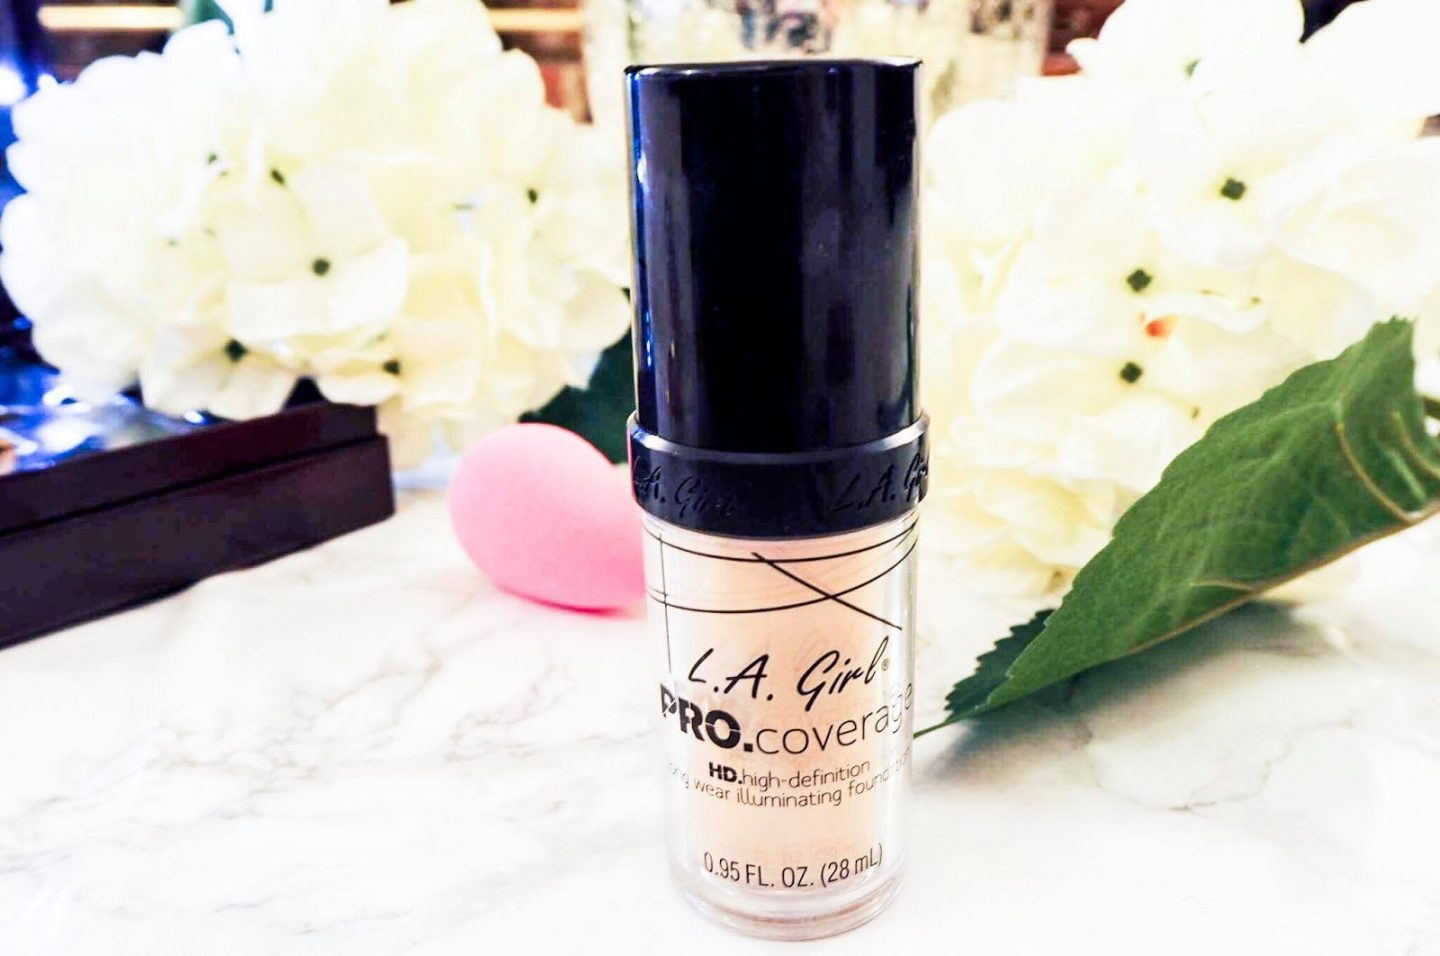 Review La Girl Procoverage Illuminating Foundation Butterfly Culture Pro Coverage Hd Porcelain